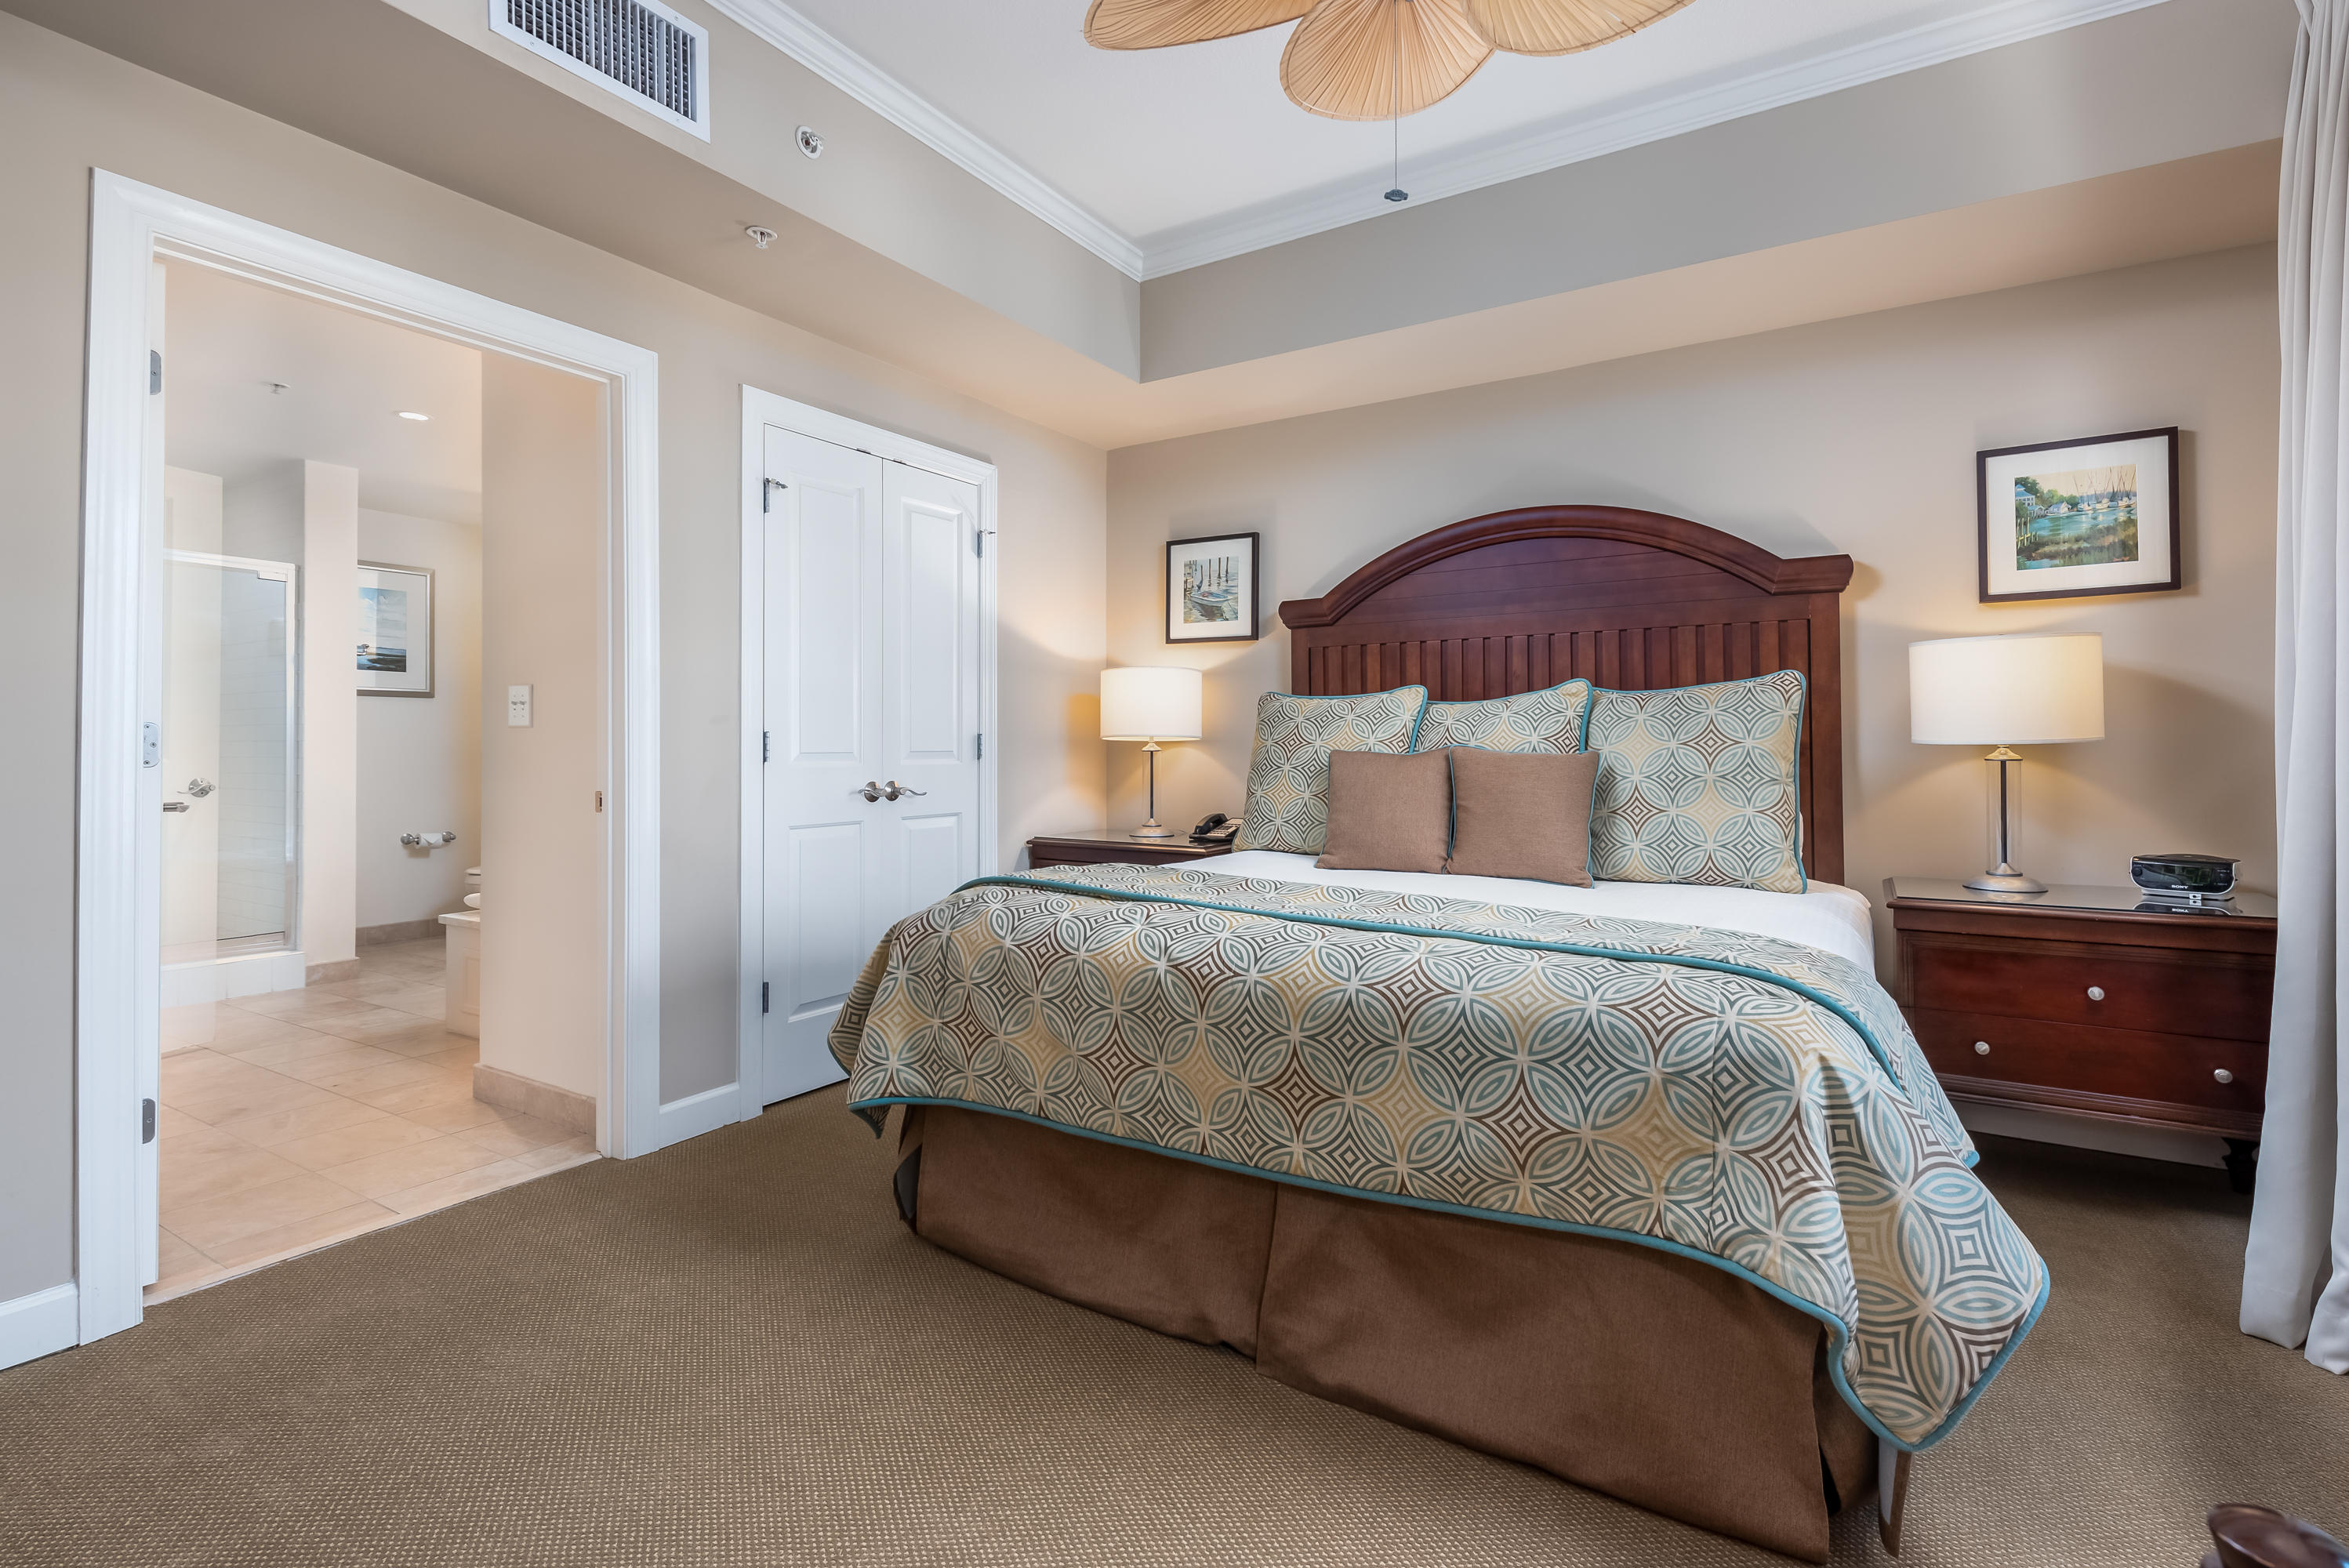 Wild Dunes Homes For Sale - 105 Village At Wild Dunes, Isle of Palms, SC - 45